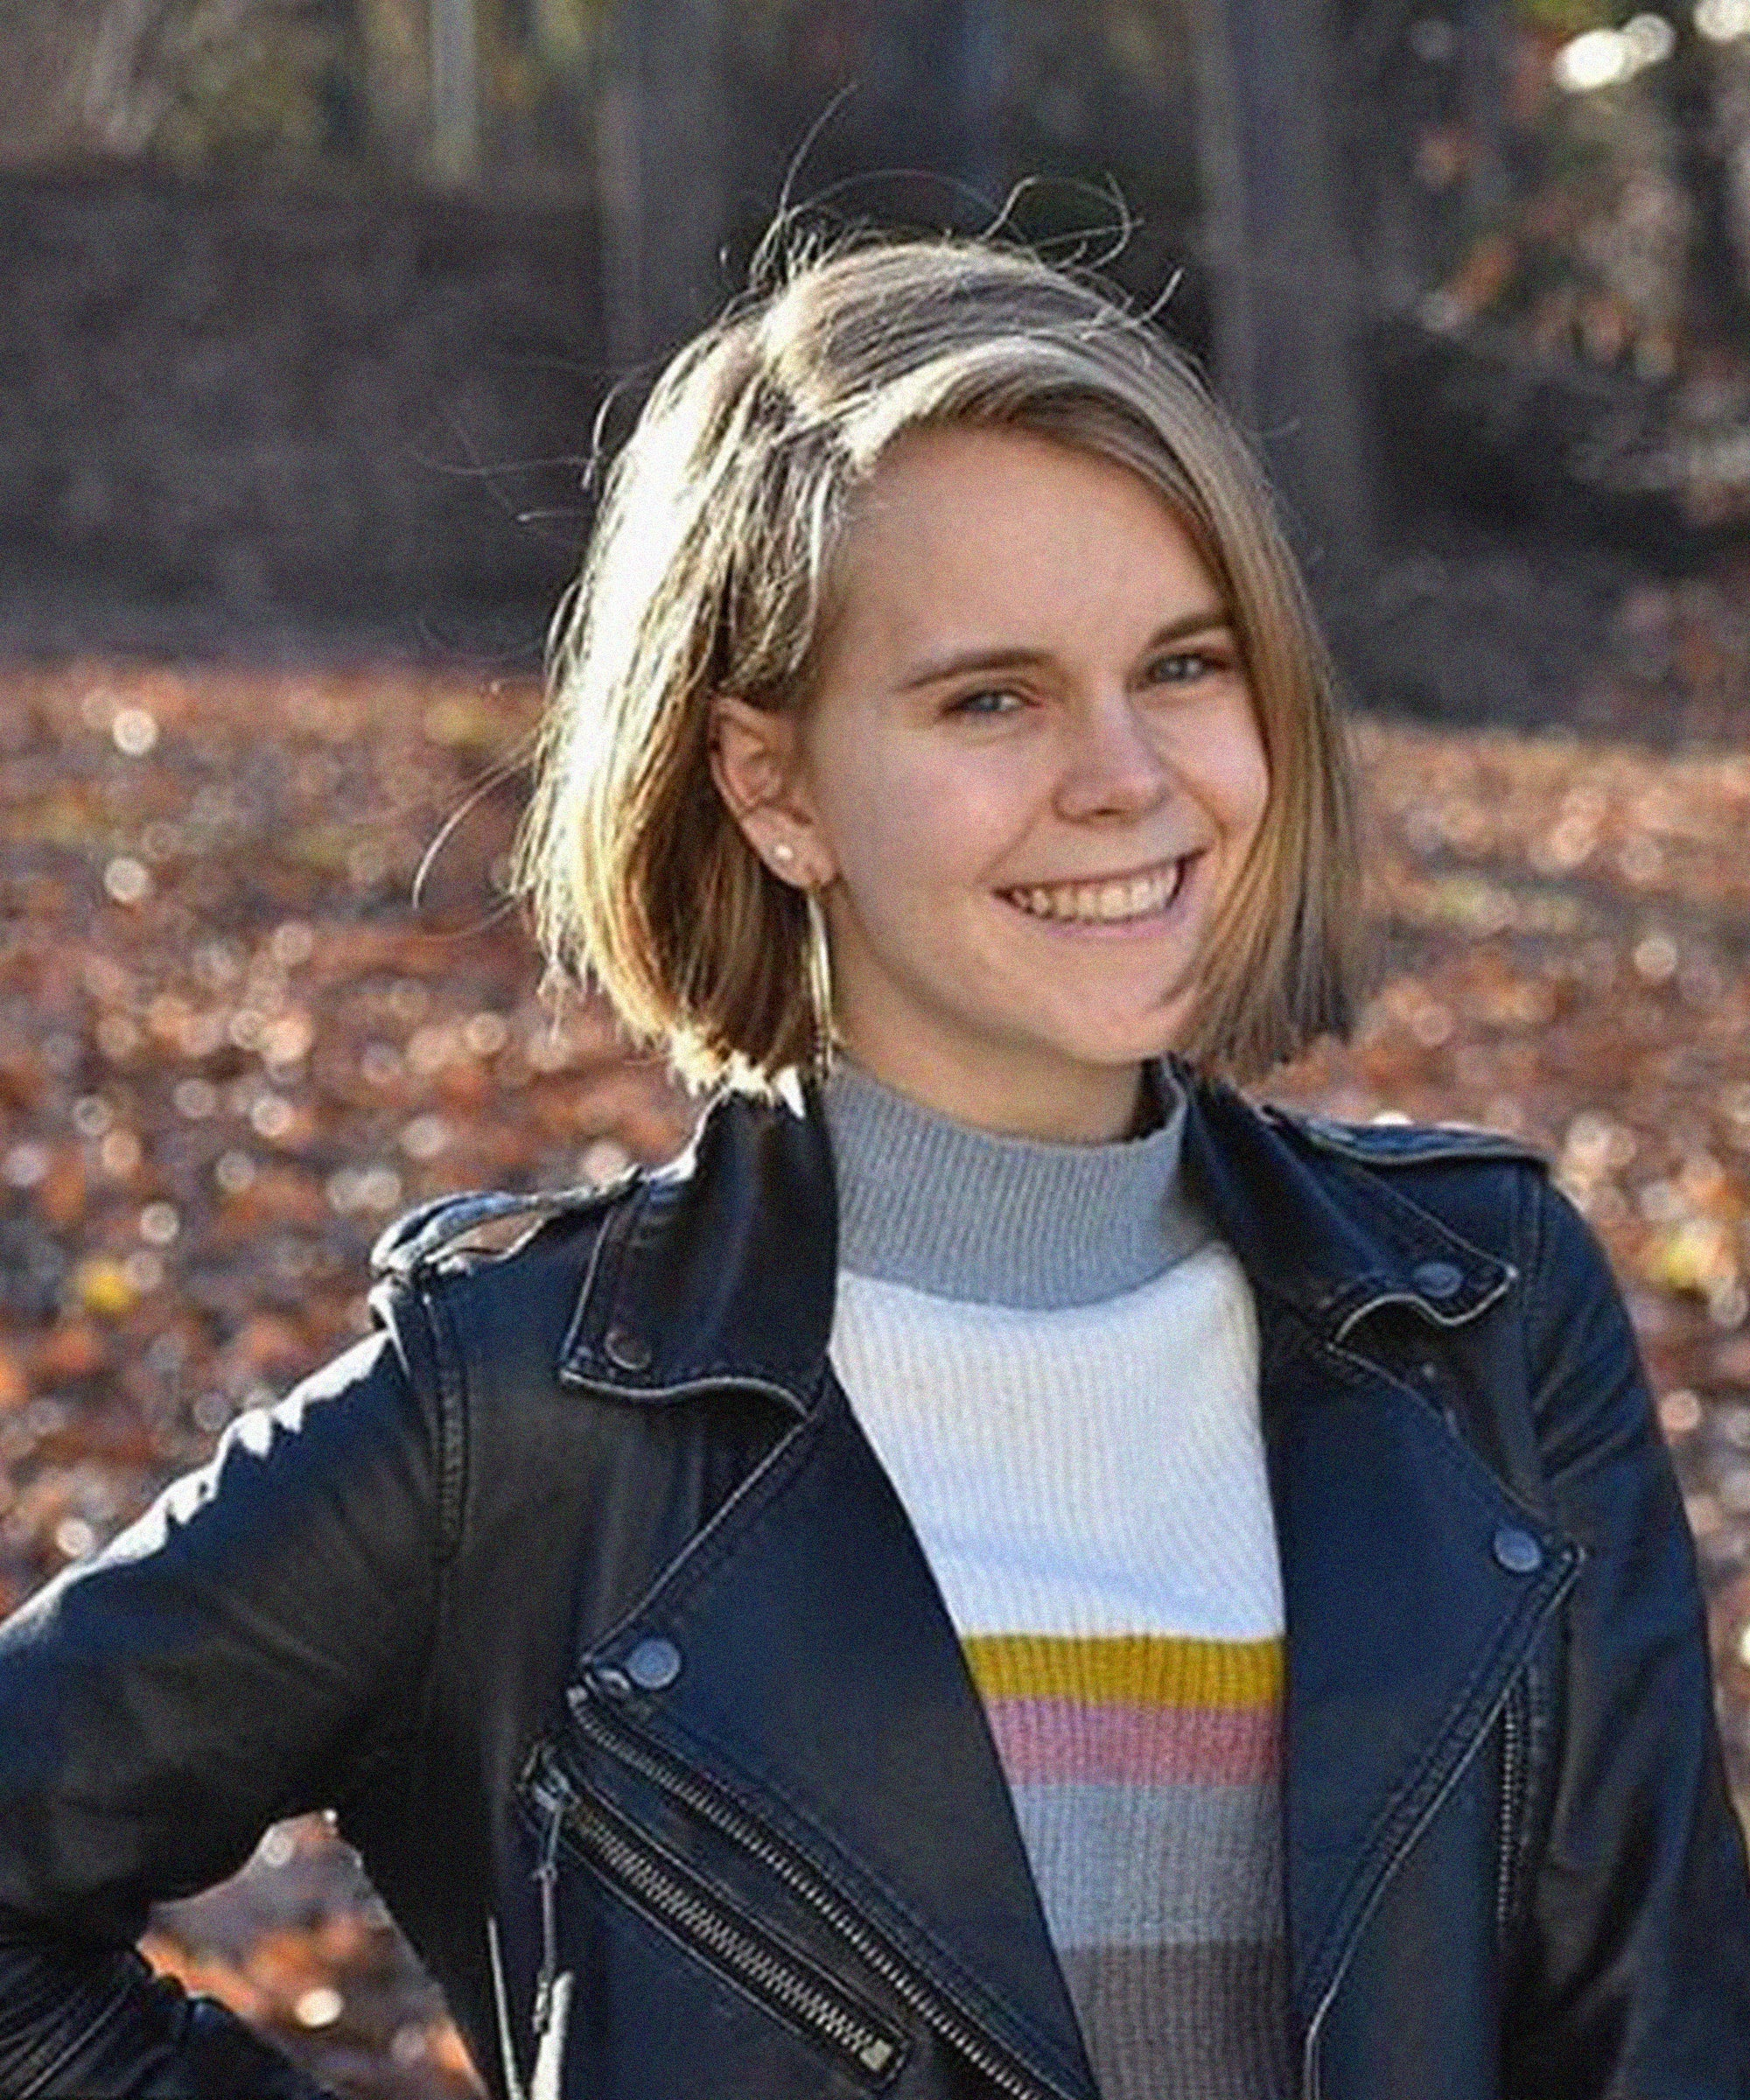 Barnard Freshman Tessa Majors Was Fatally Stabbed To Death In New York